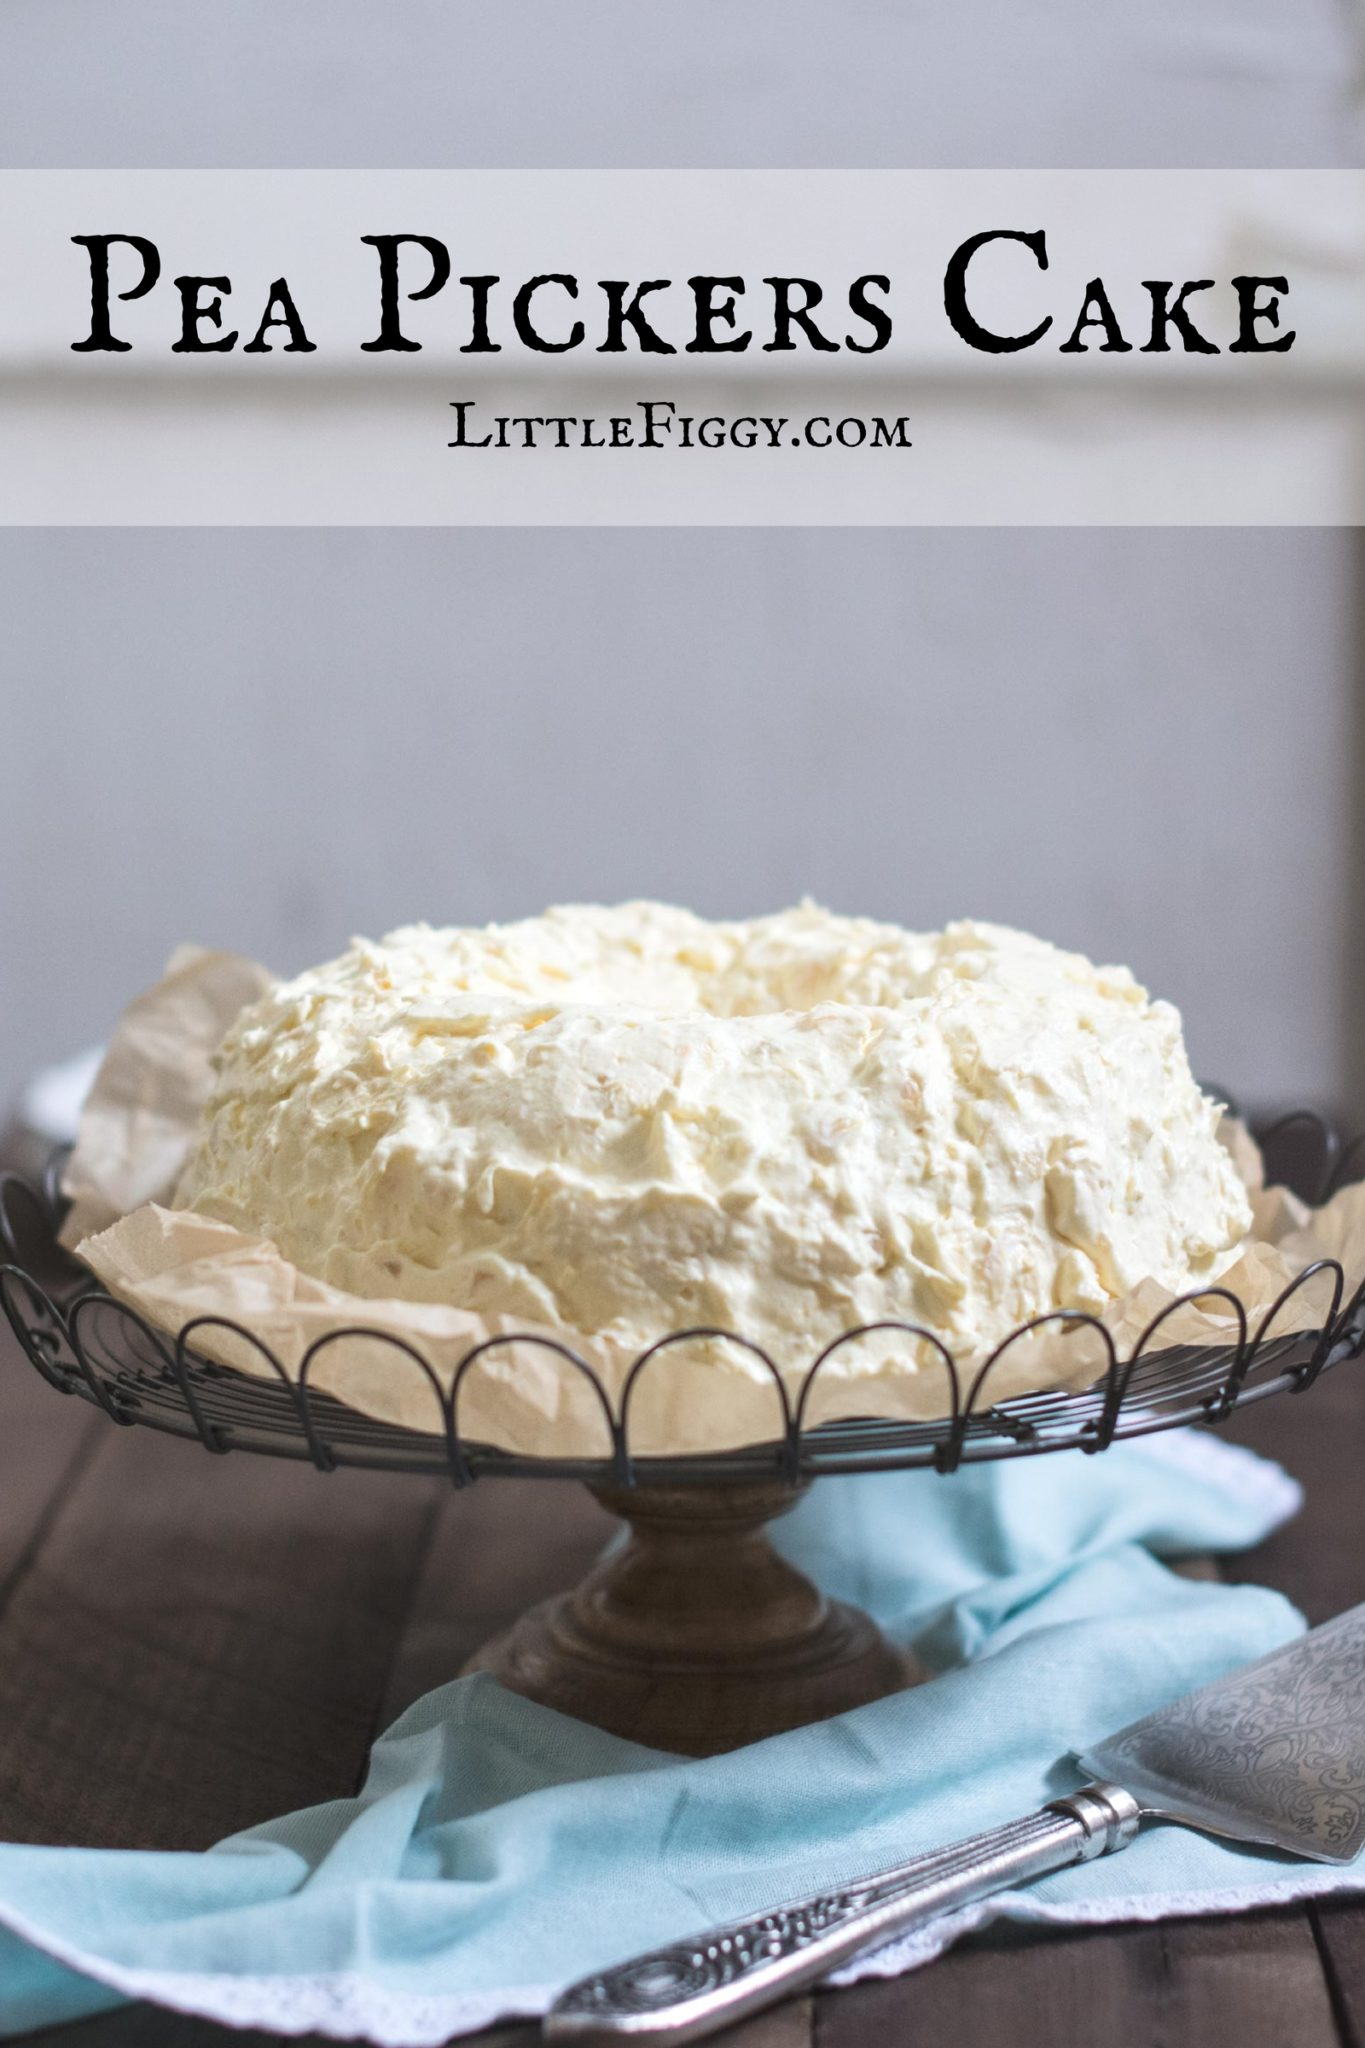 Pea Pickers Cake (also known as Cool Whip Cake), a childhood favorite that's easy to make and full of mandarin oranges and crushed pineapple! Recipe @LittleFiggyFood